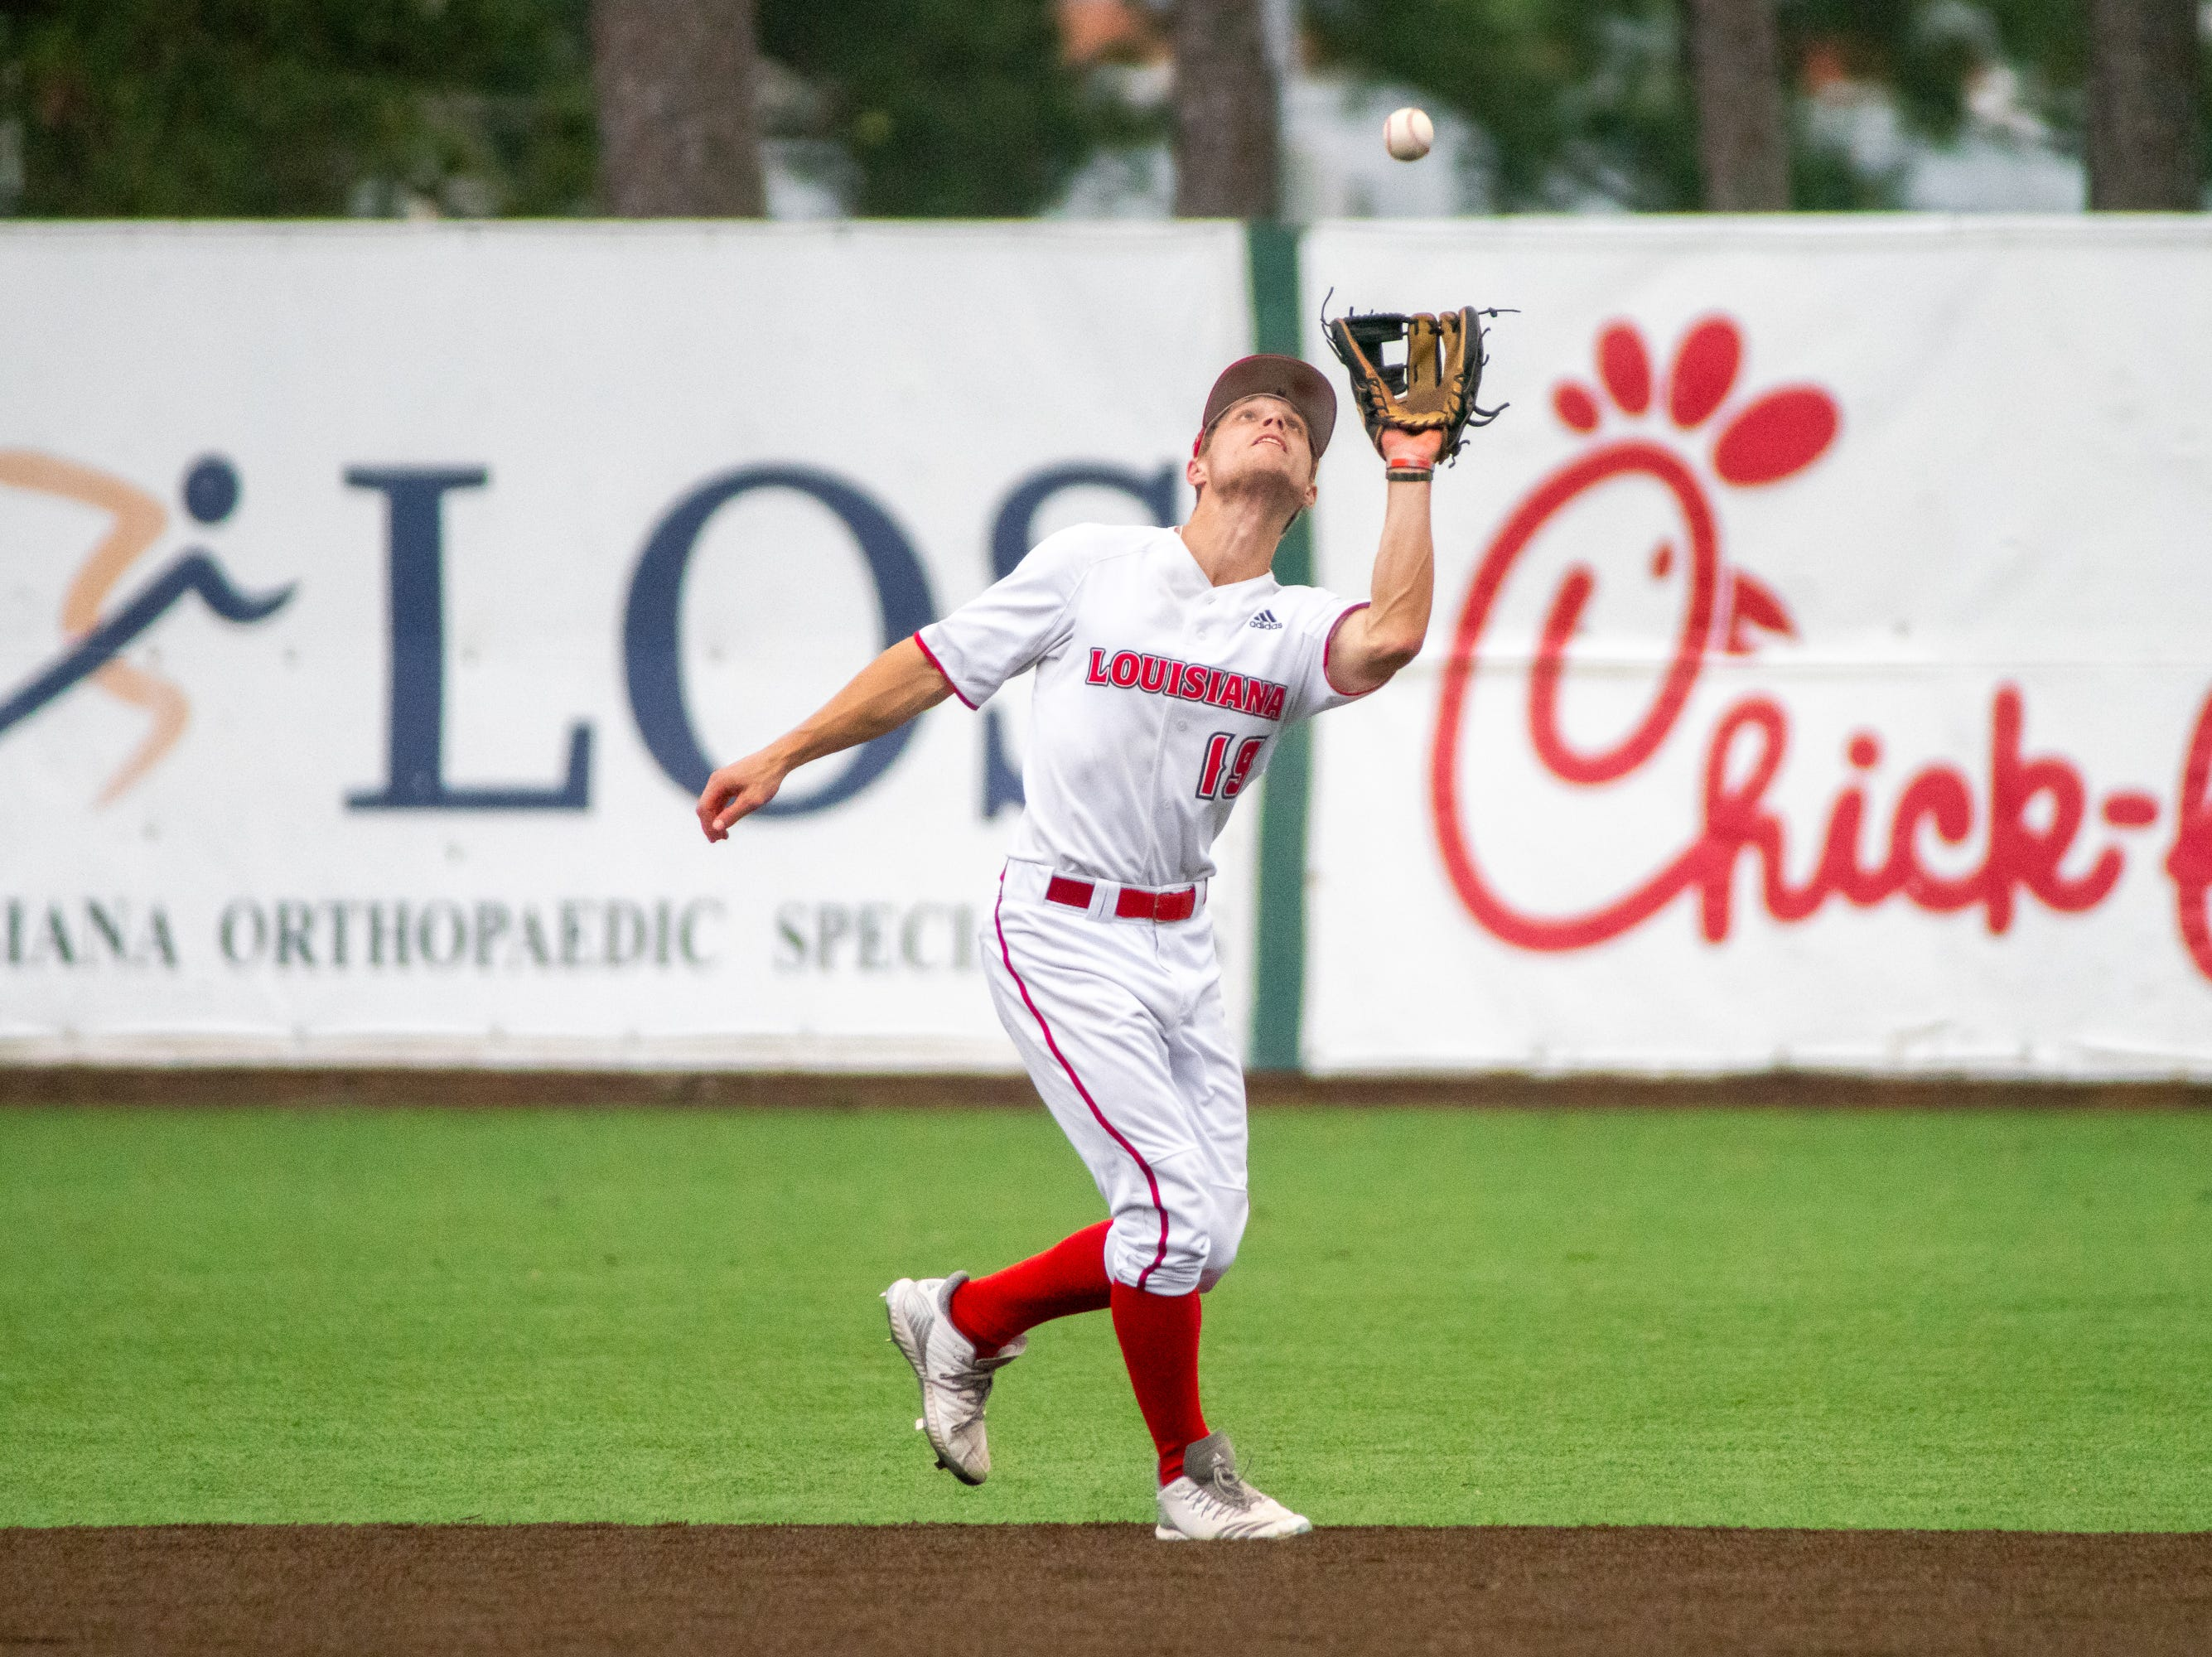 """UL's Hunter Kasuls makes a catch in the infield as the Ragin' Cajuns take on the South Alabama Jaguars at M.L. """"Tigue"""" Moore Field on Saturday, April 13, 2019."""